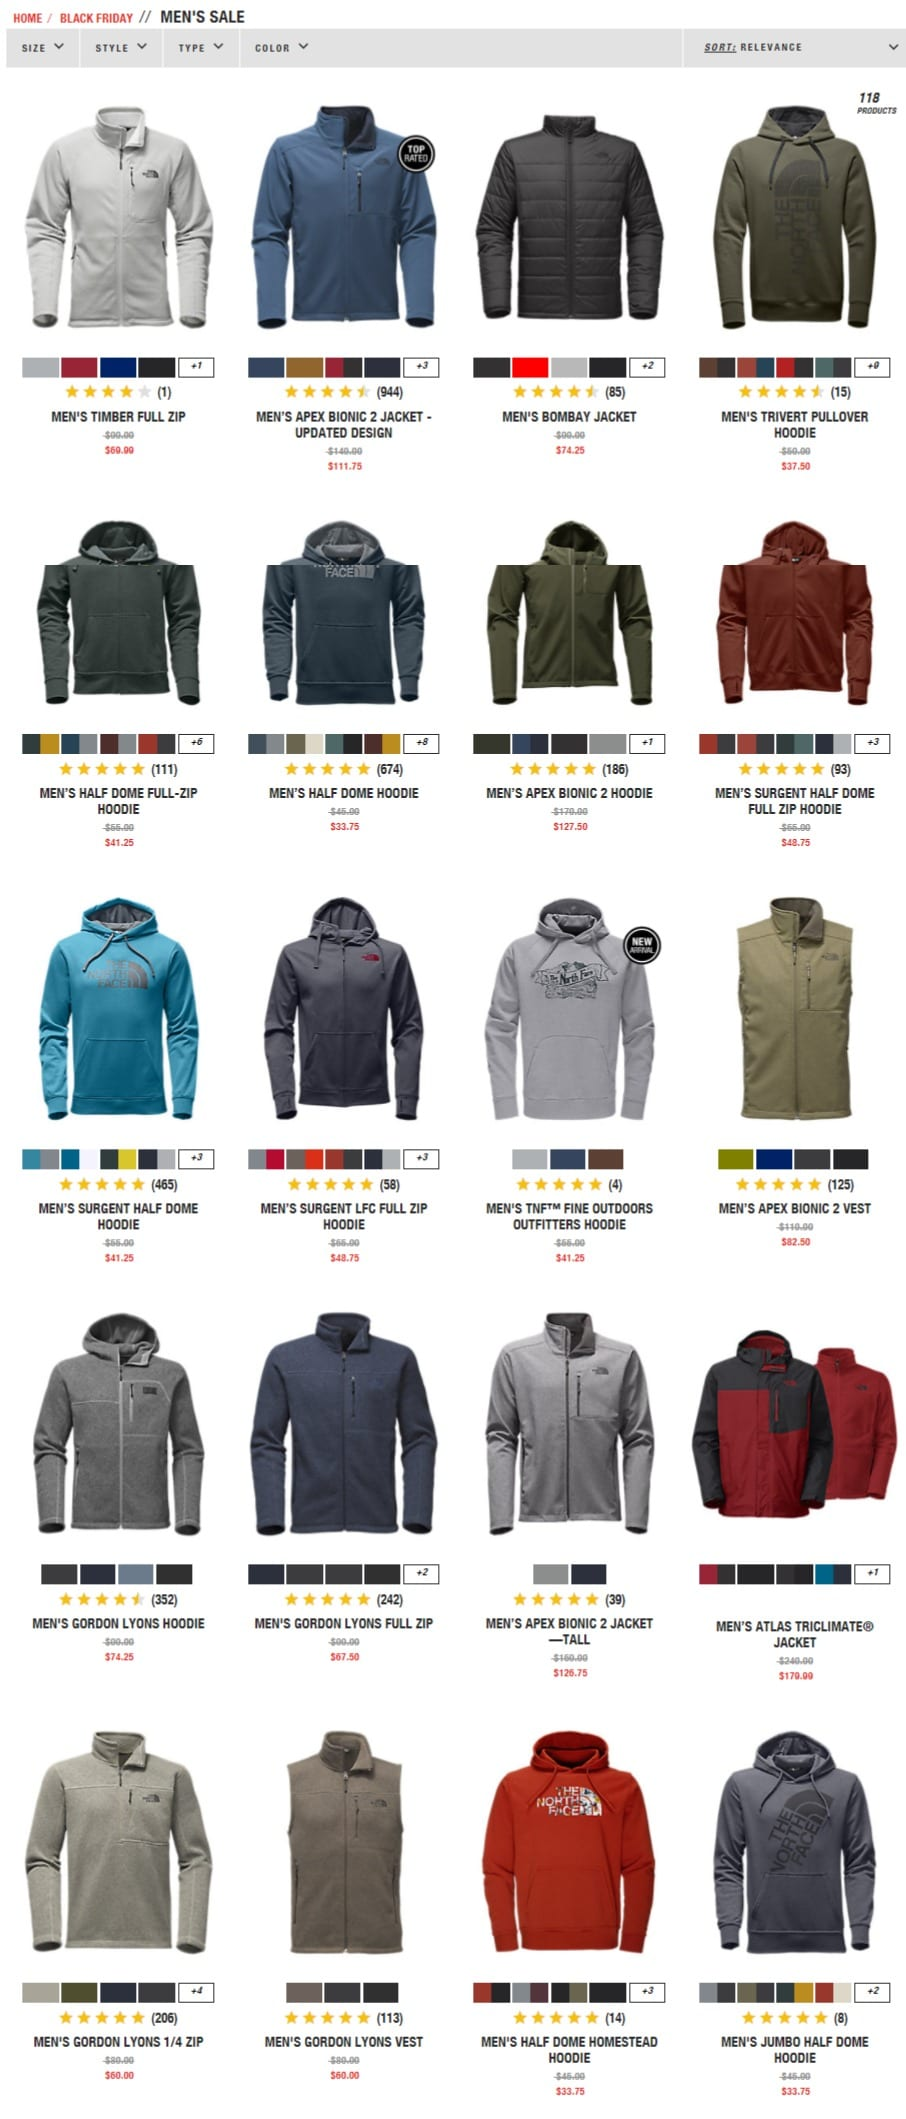 ab6ebbd48 The North Face Black Friday Deals 2017